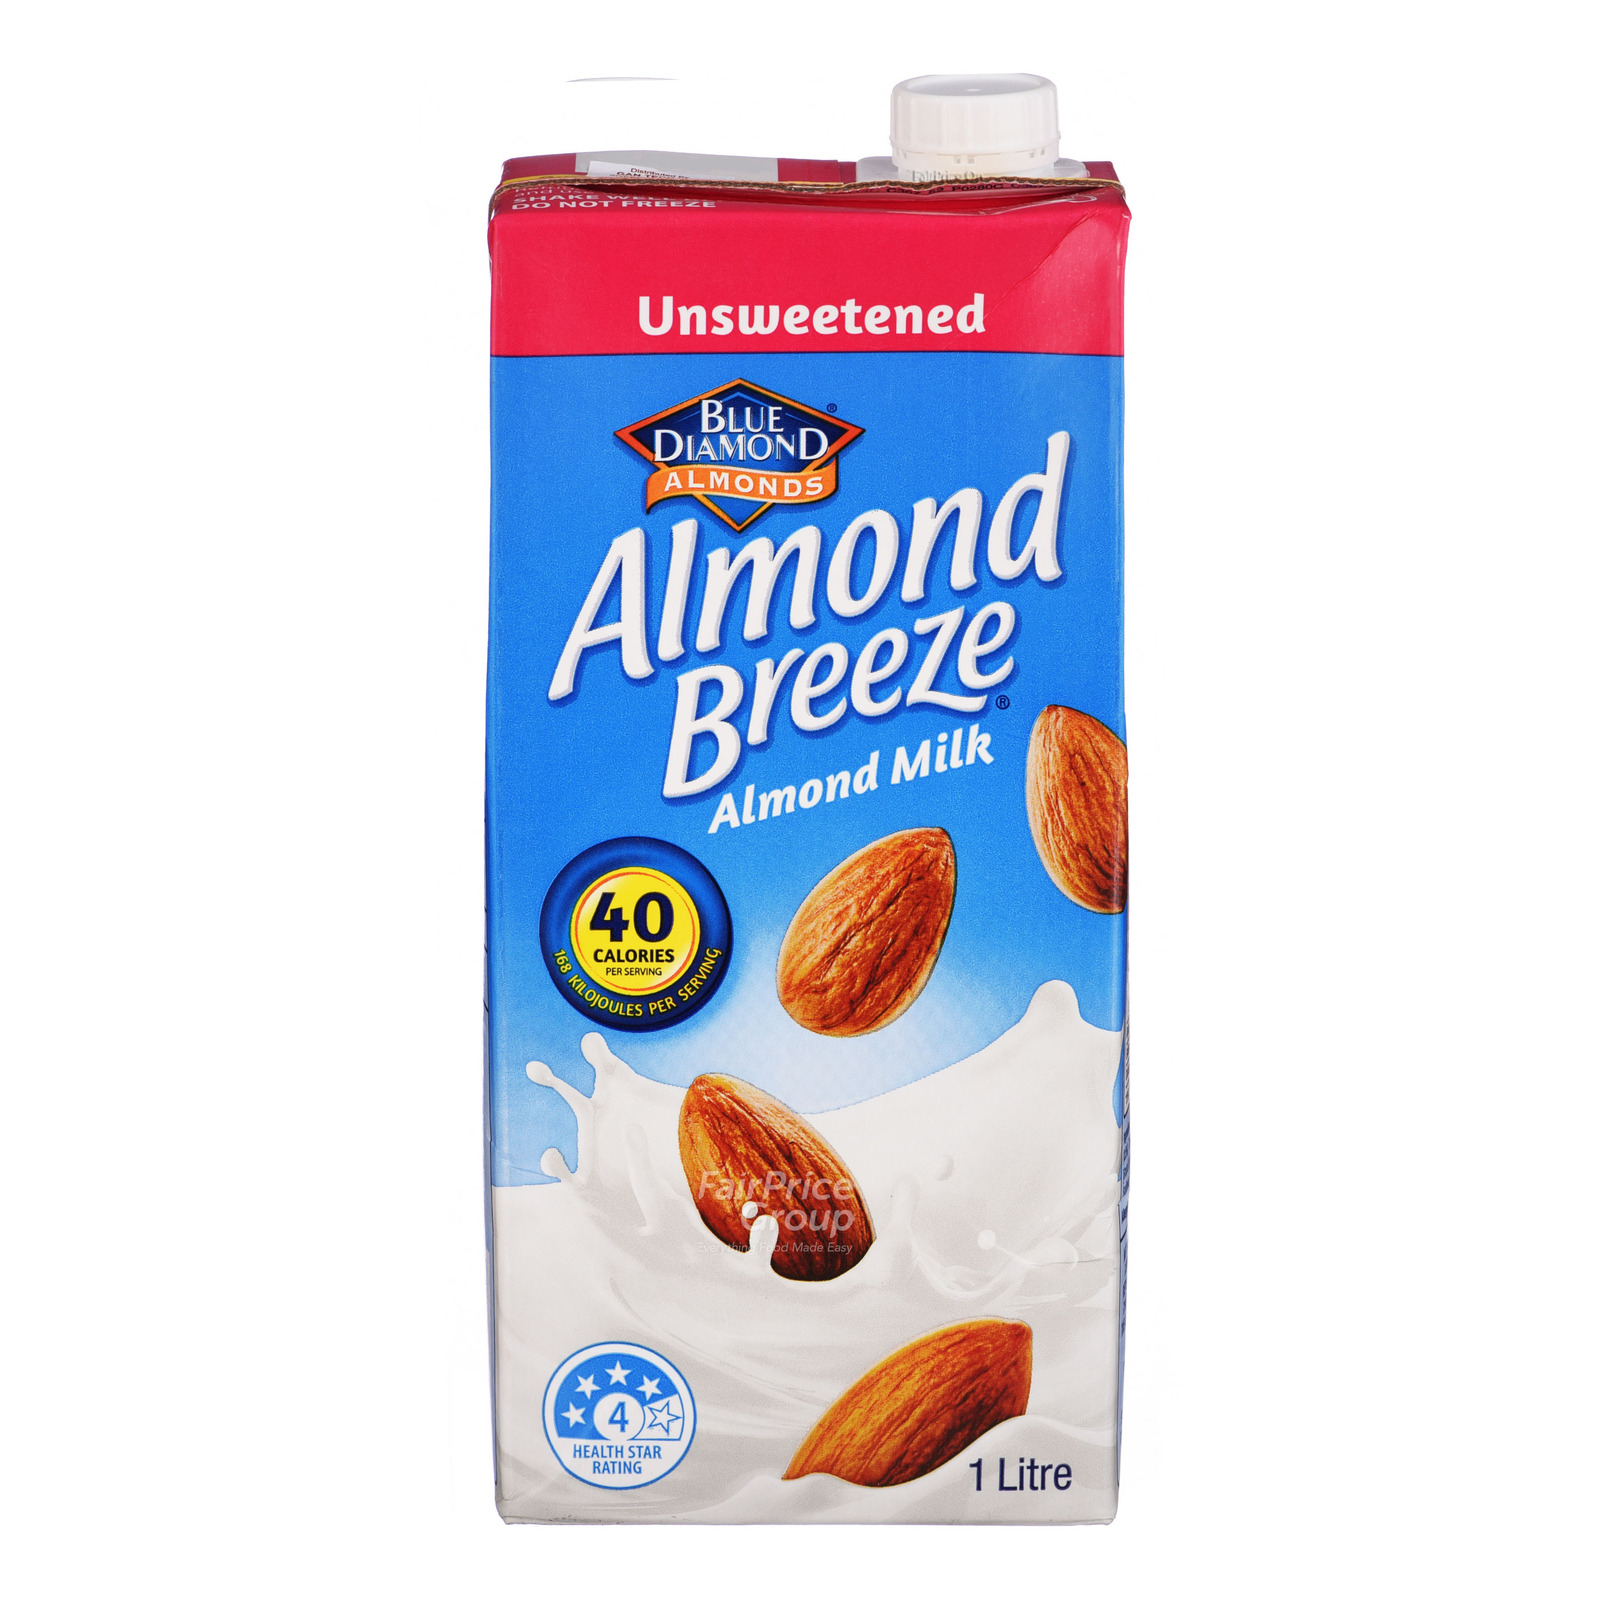 Blue Diamond Almond Breeze Almond Milk - Unsweetened